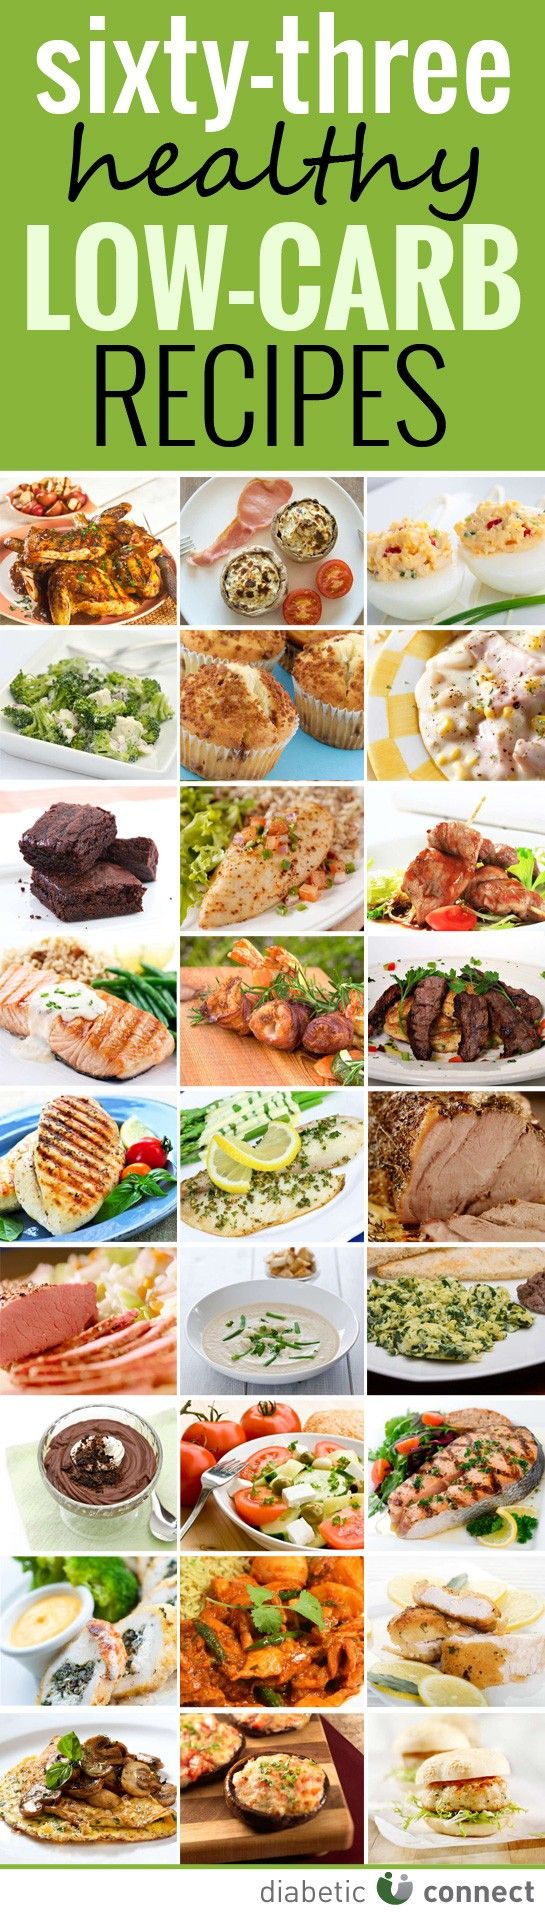 Best of diabetic connect low carb recipes 63 great recipes in one best of diabetic connect low carb recipes 63 great recipes in one place forumfinder Image collections